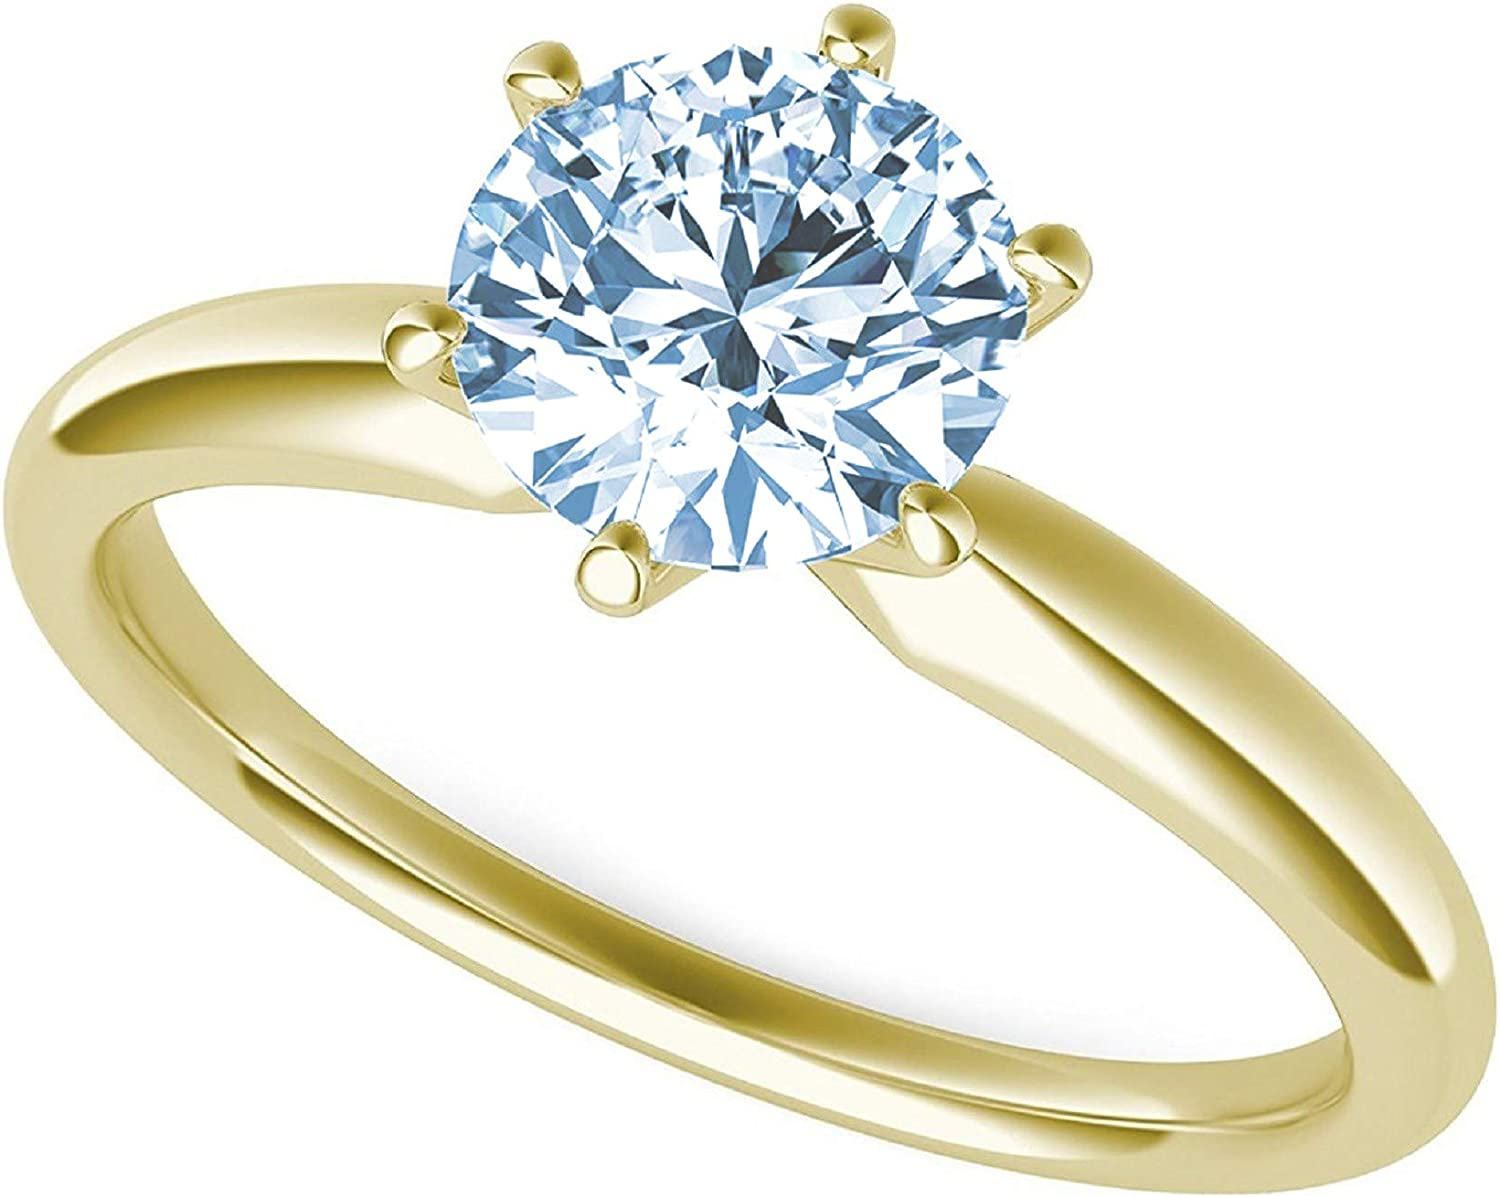 2.95ct Round Cut Solitaire Aquamarine Blue Simulated Diamond CZ Excellent VVS1 D 6-prong Classic Designer Statement Ring Solid Real 14k Yellow Gold for Women